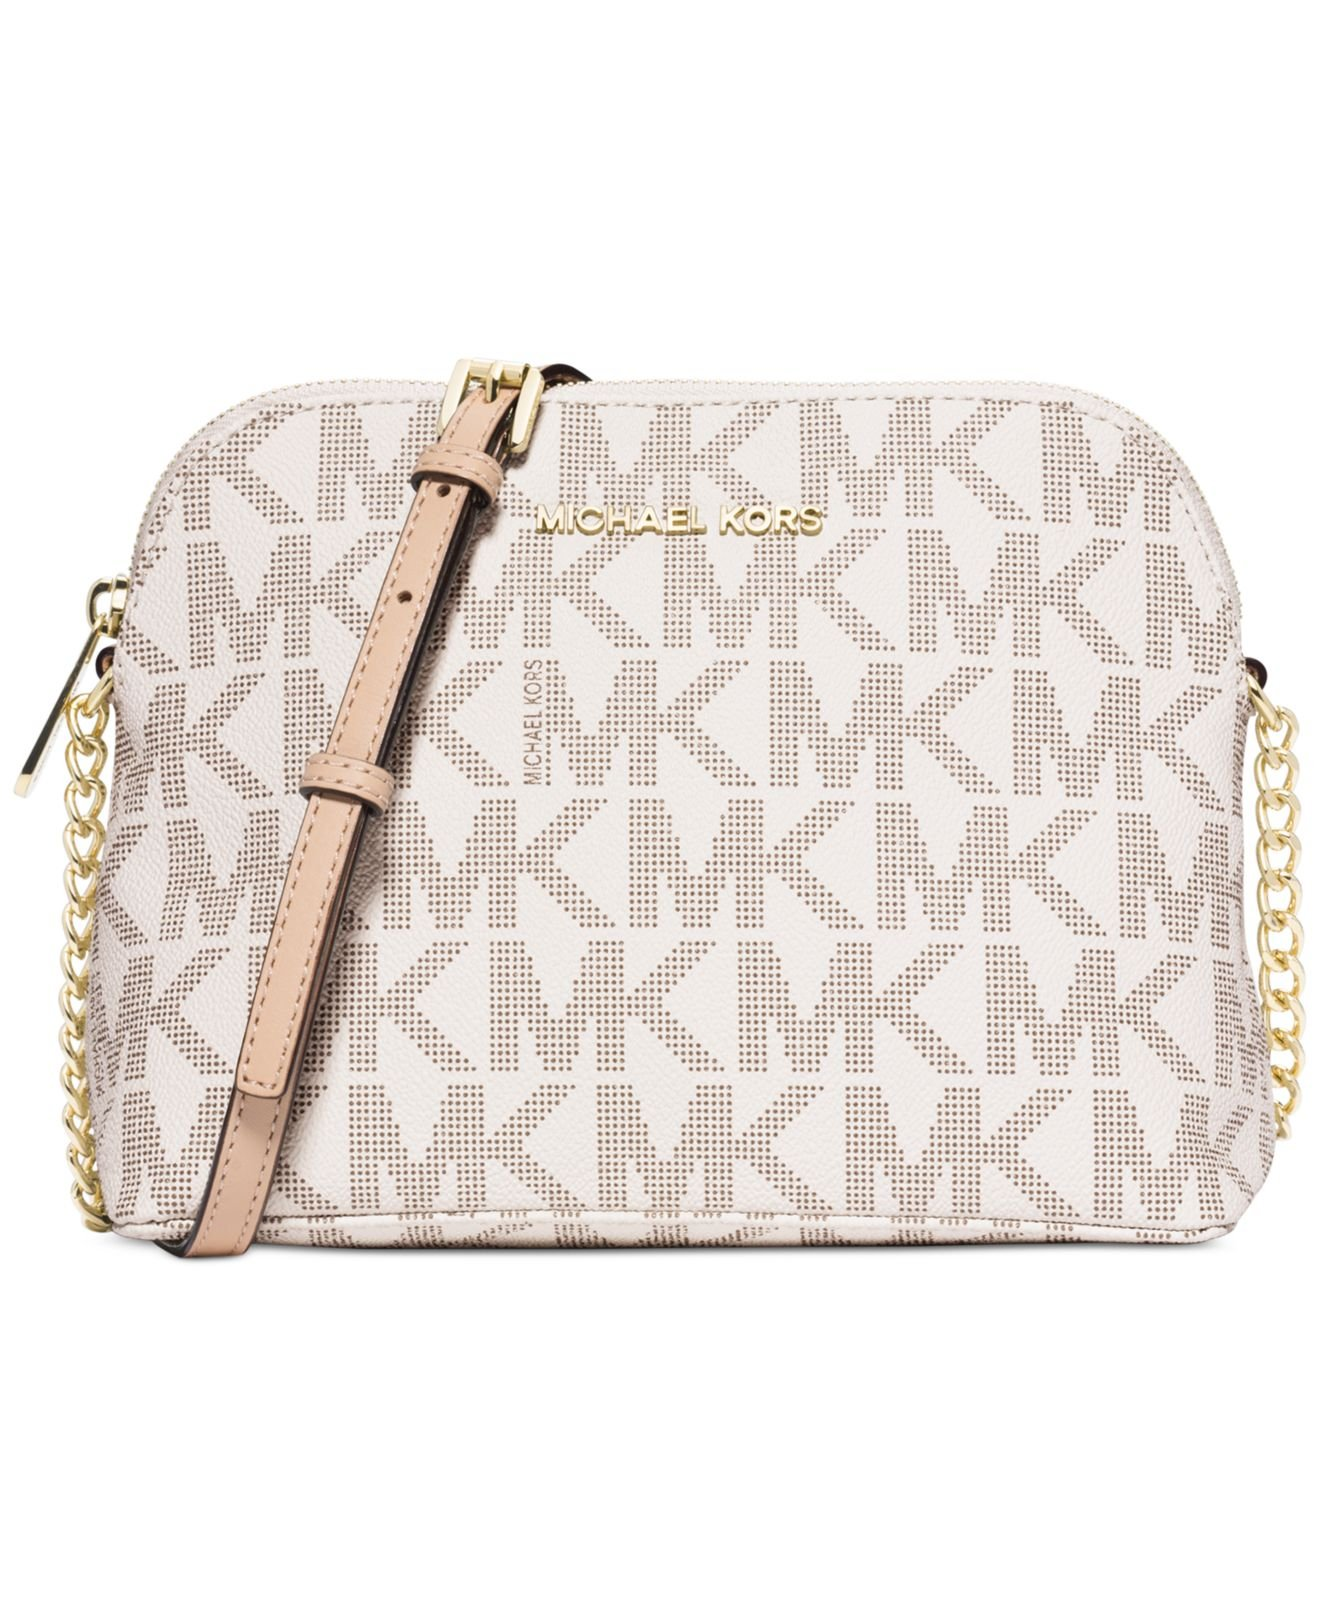 b78573b7347ed Gallery. Previously sold at  Macy s · Women s Michael Kors Cindy ...